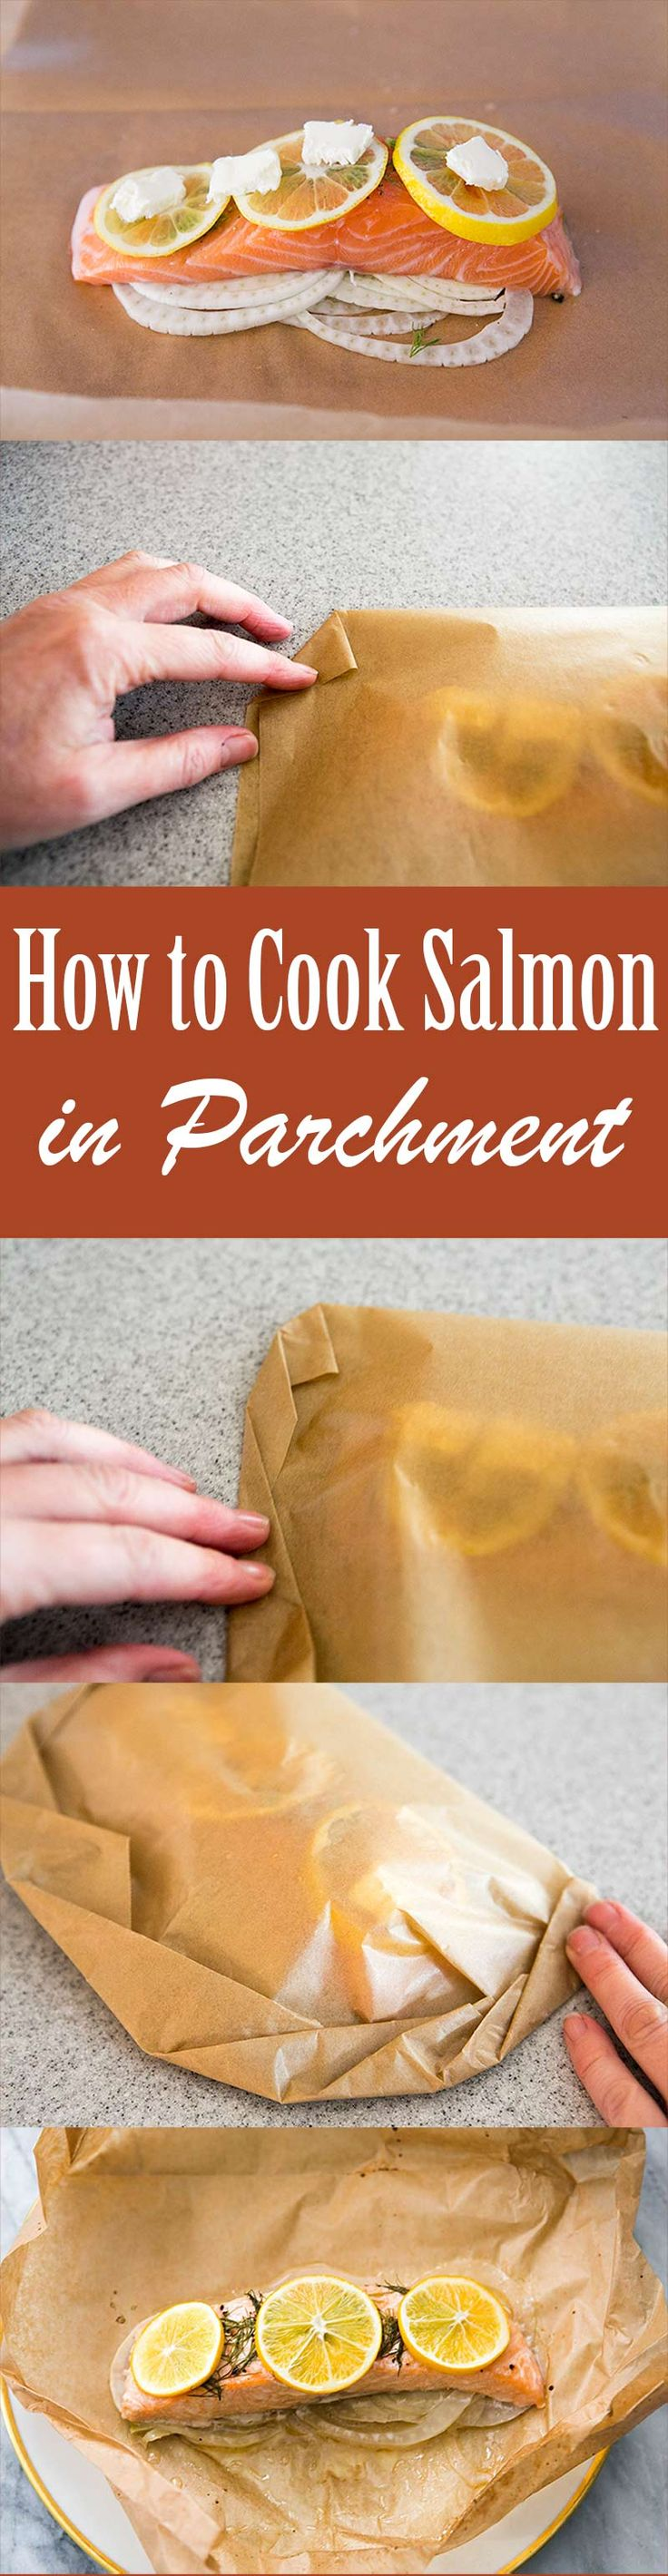 Cook salmon fillets in parchment pockets, it's EASY! Here's a quick tutorial how.